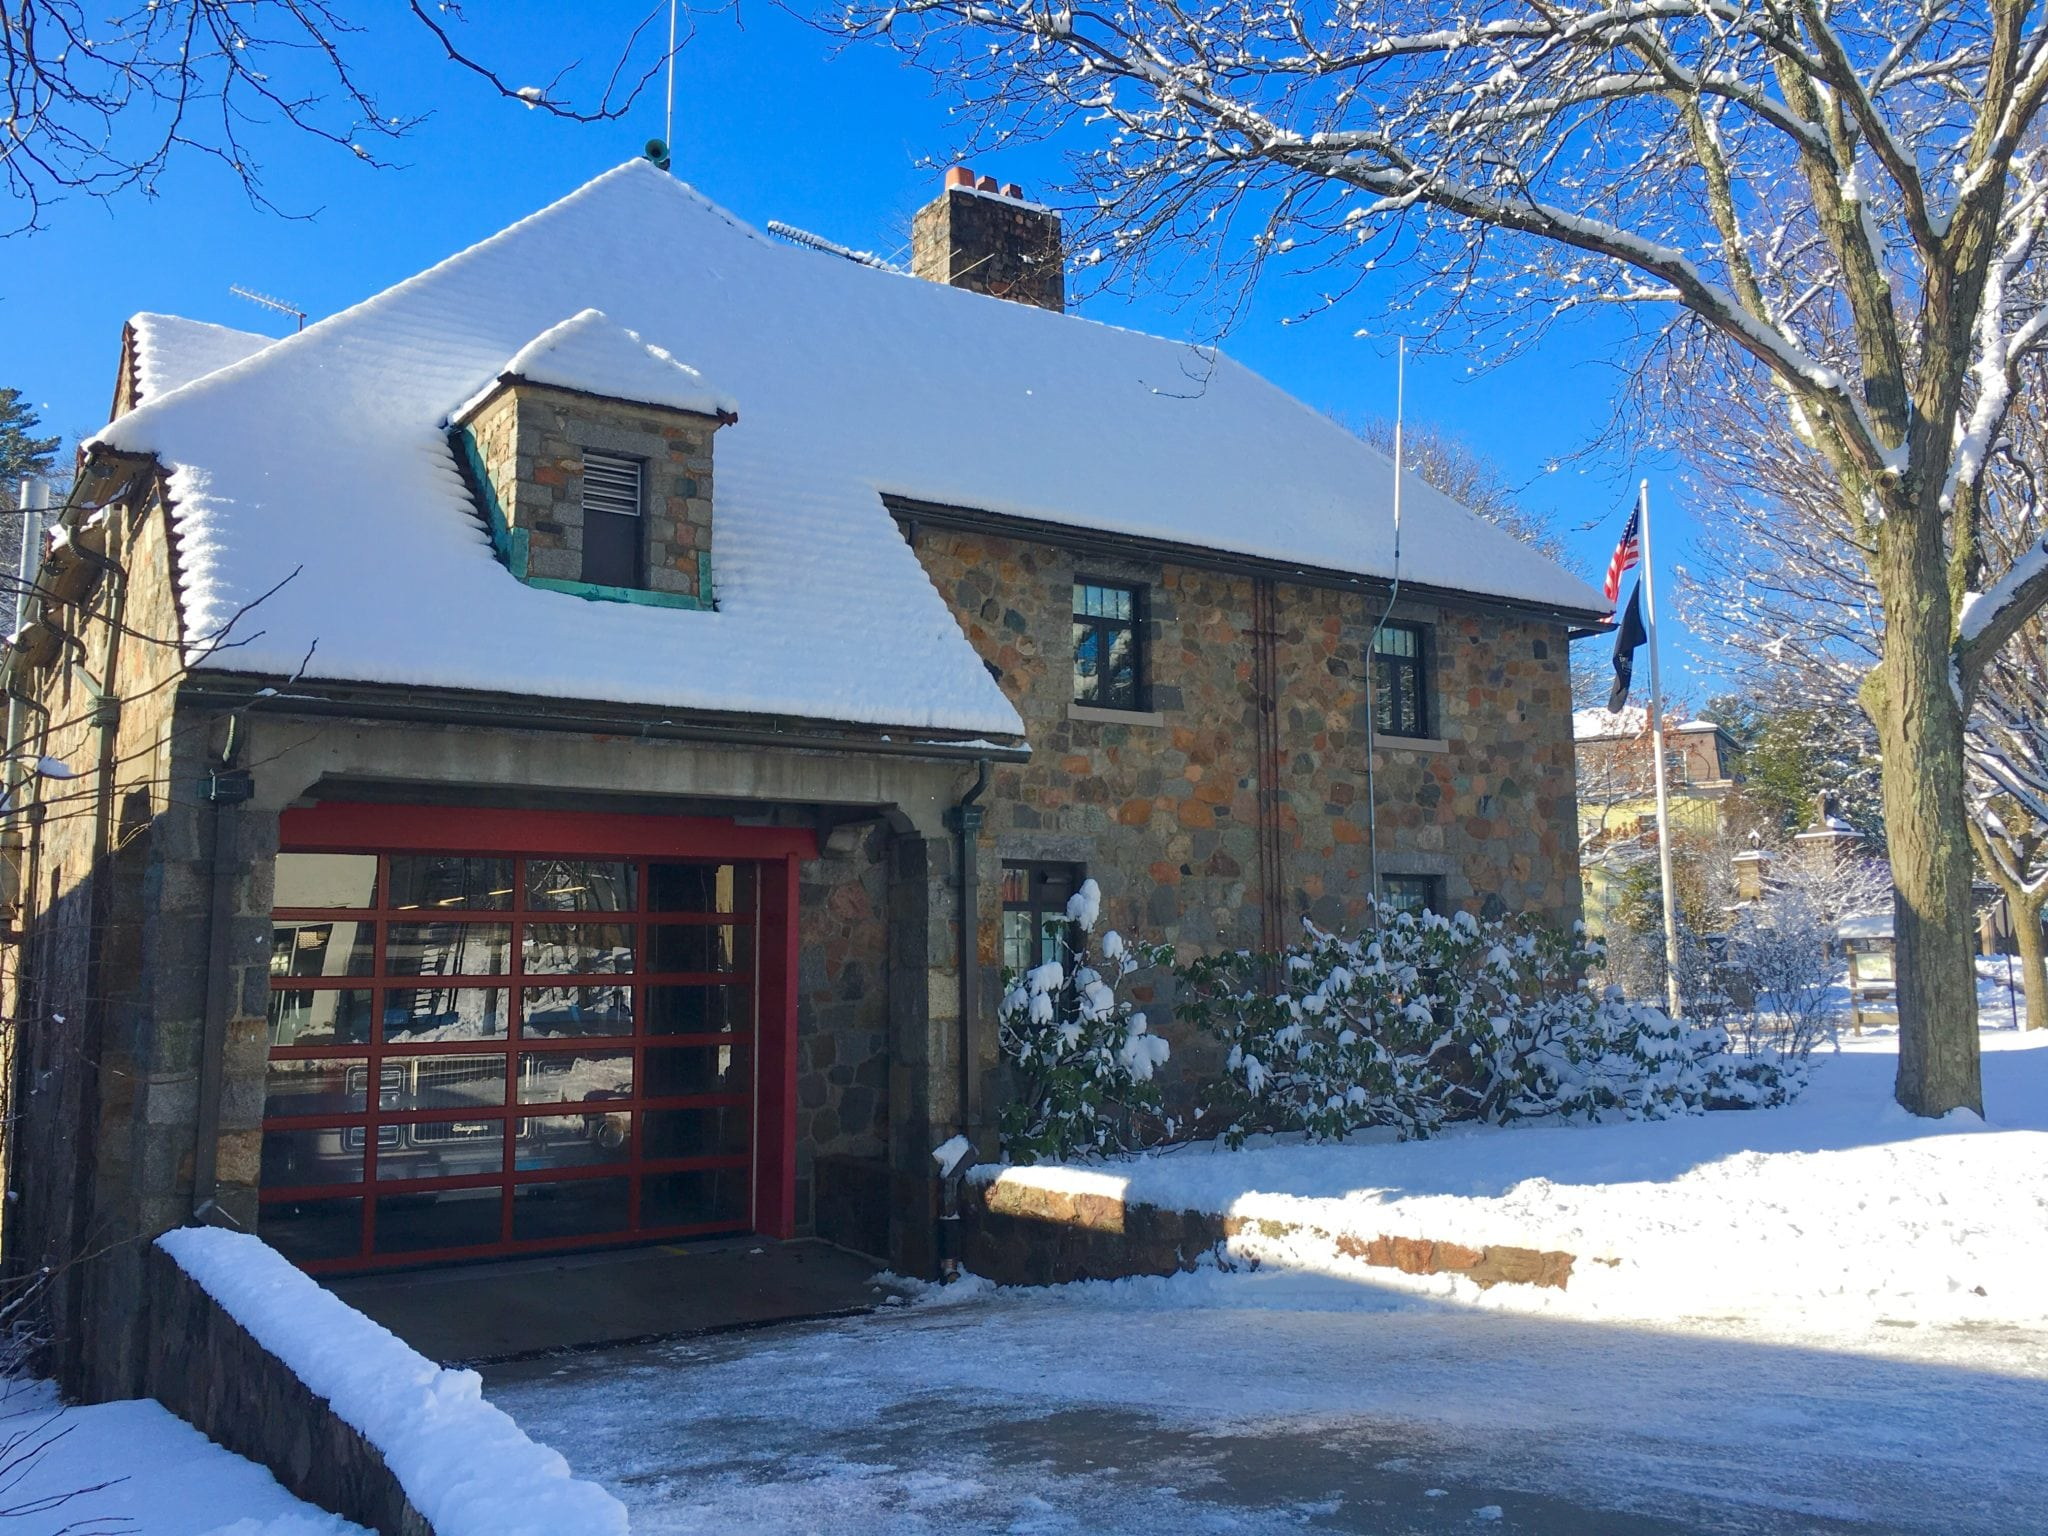 Fire Department, Wellesley Square